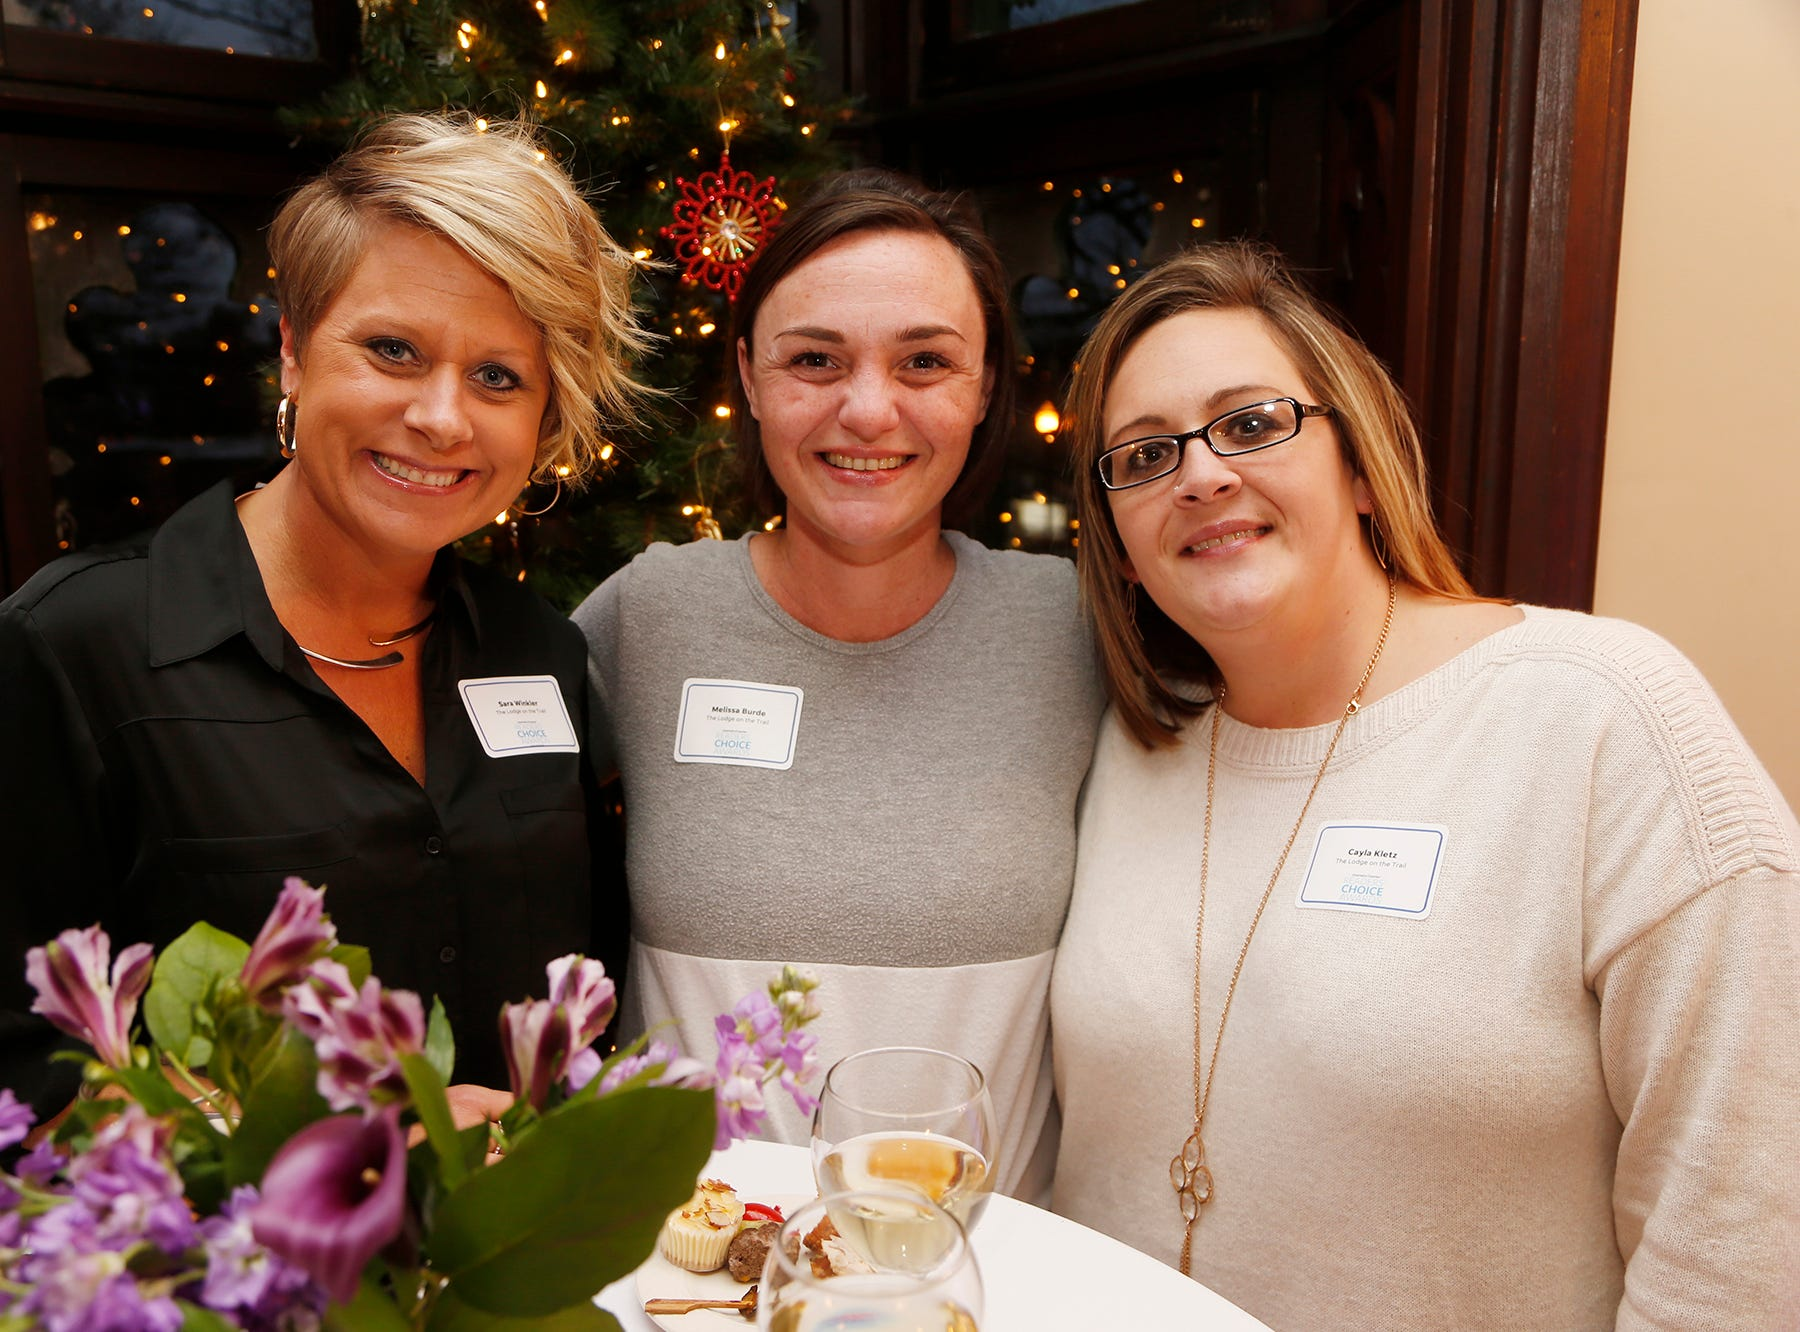 Winners mingle at the Journal & Courier Readers' Choice Awards Thursday, November 29, 2018, at the Moses Fowler House.